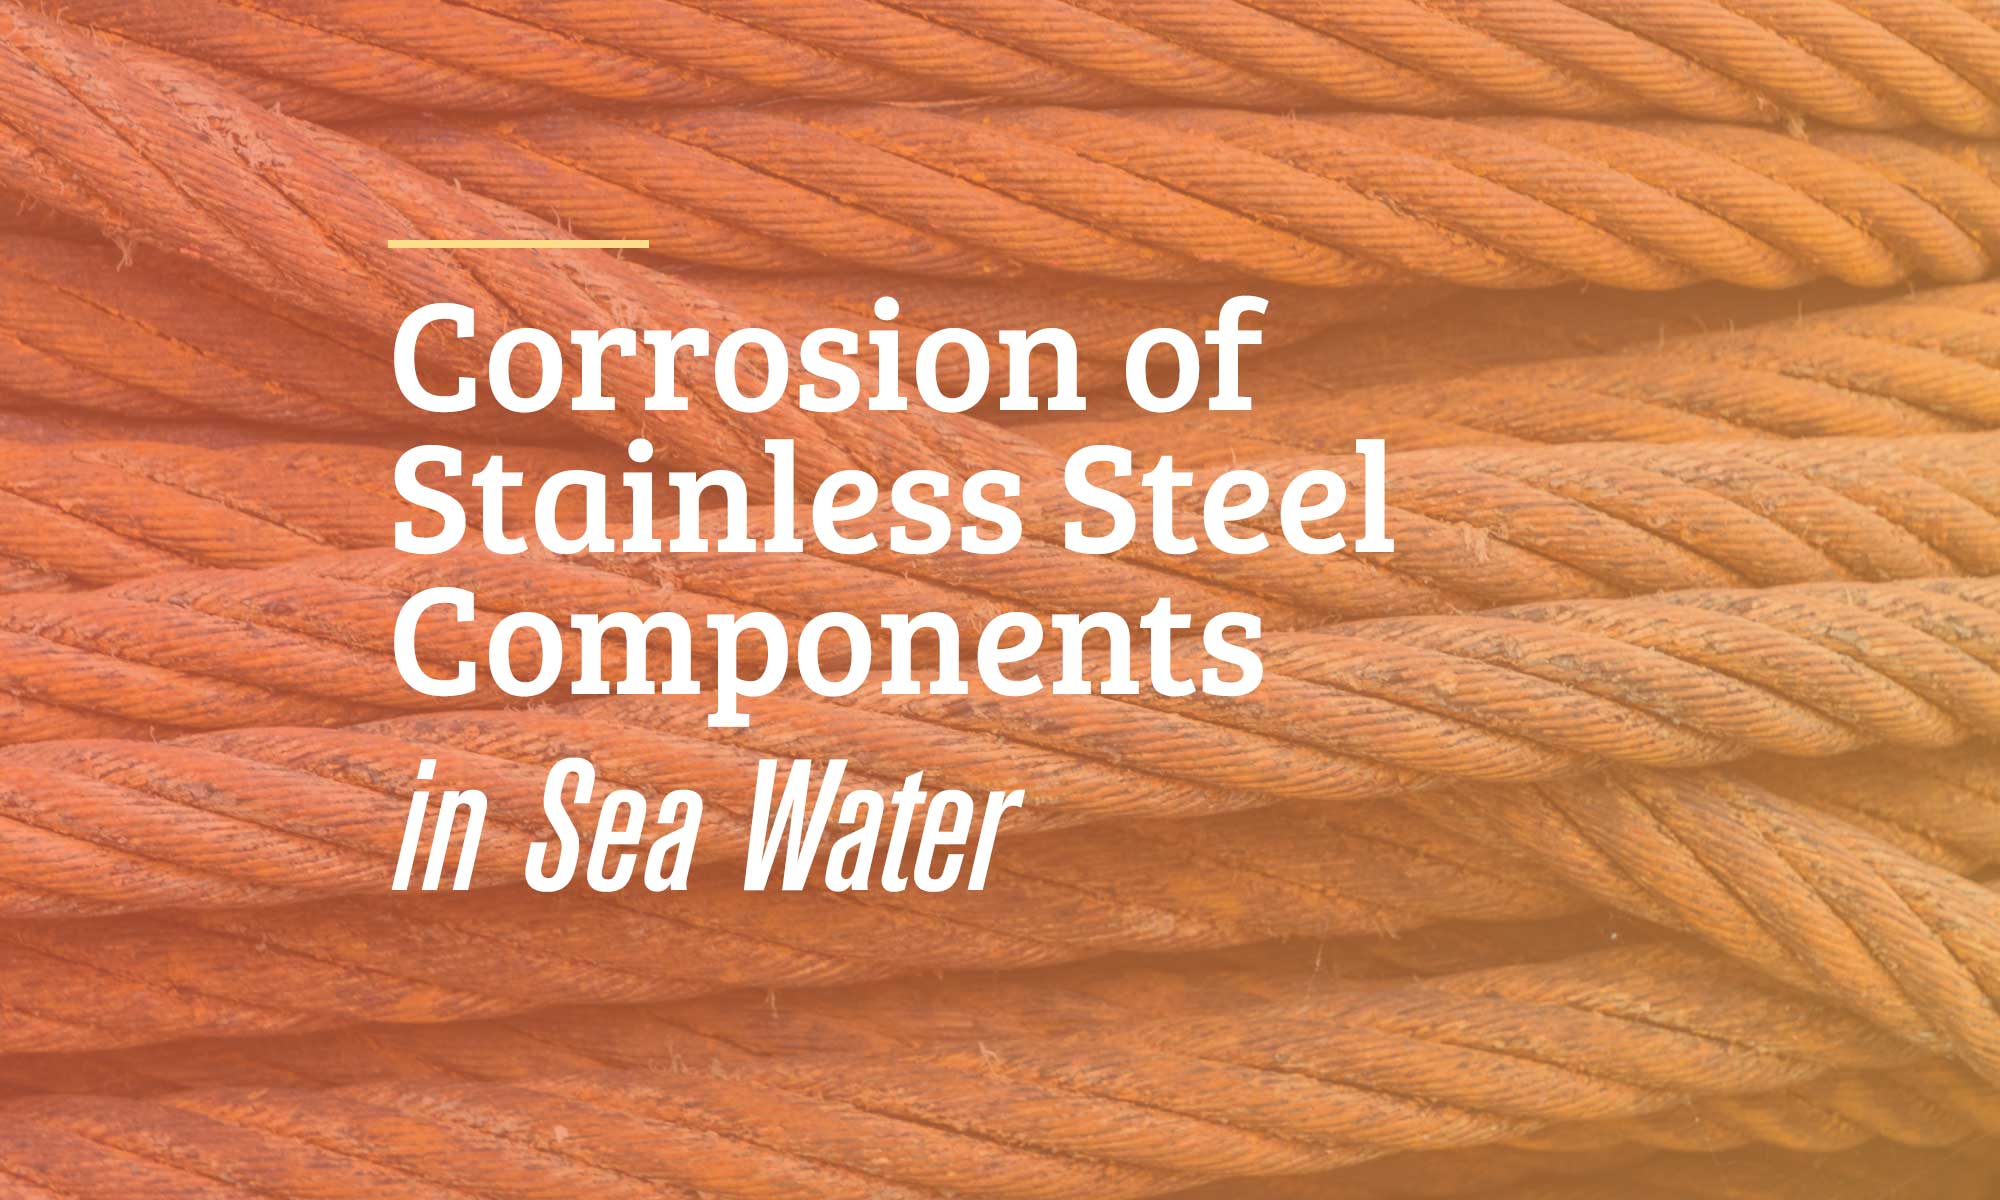 tfgusa-corrosion-stainless-steel-manufacturing